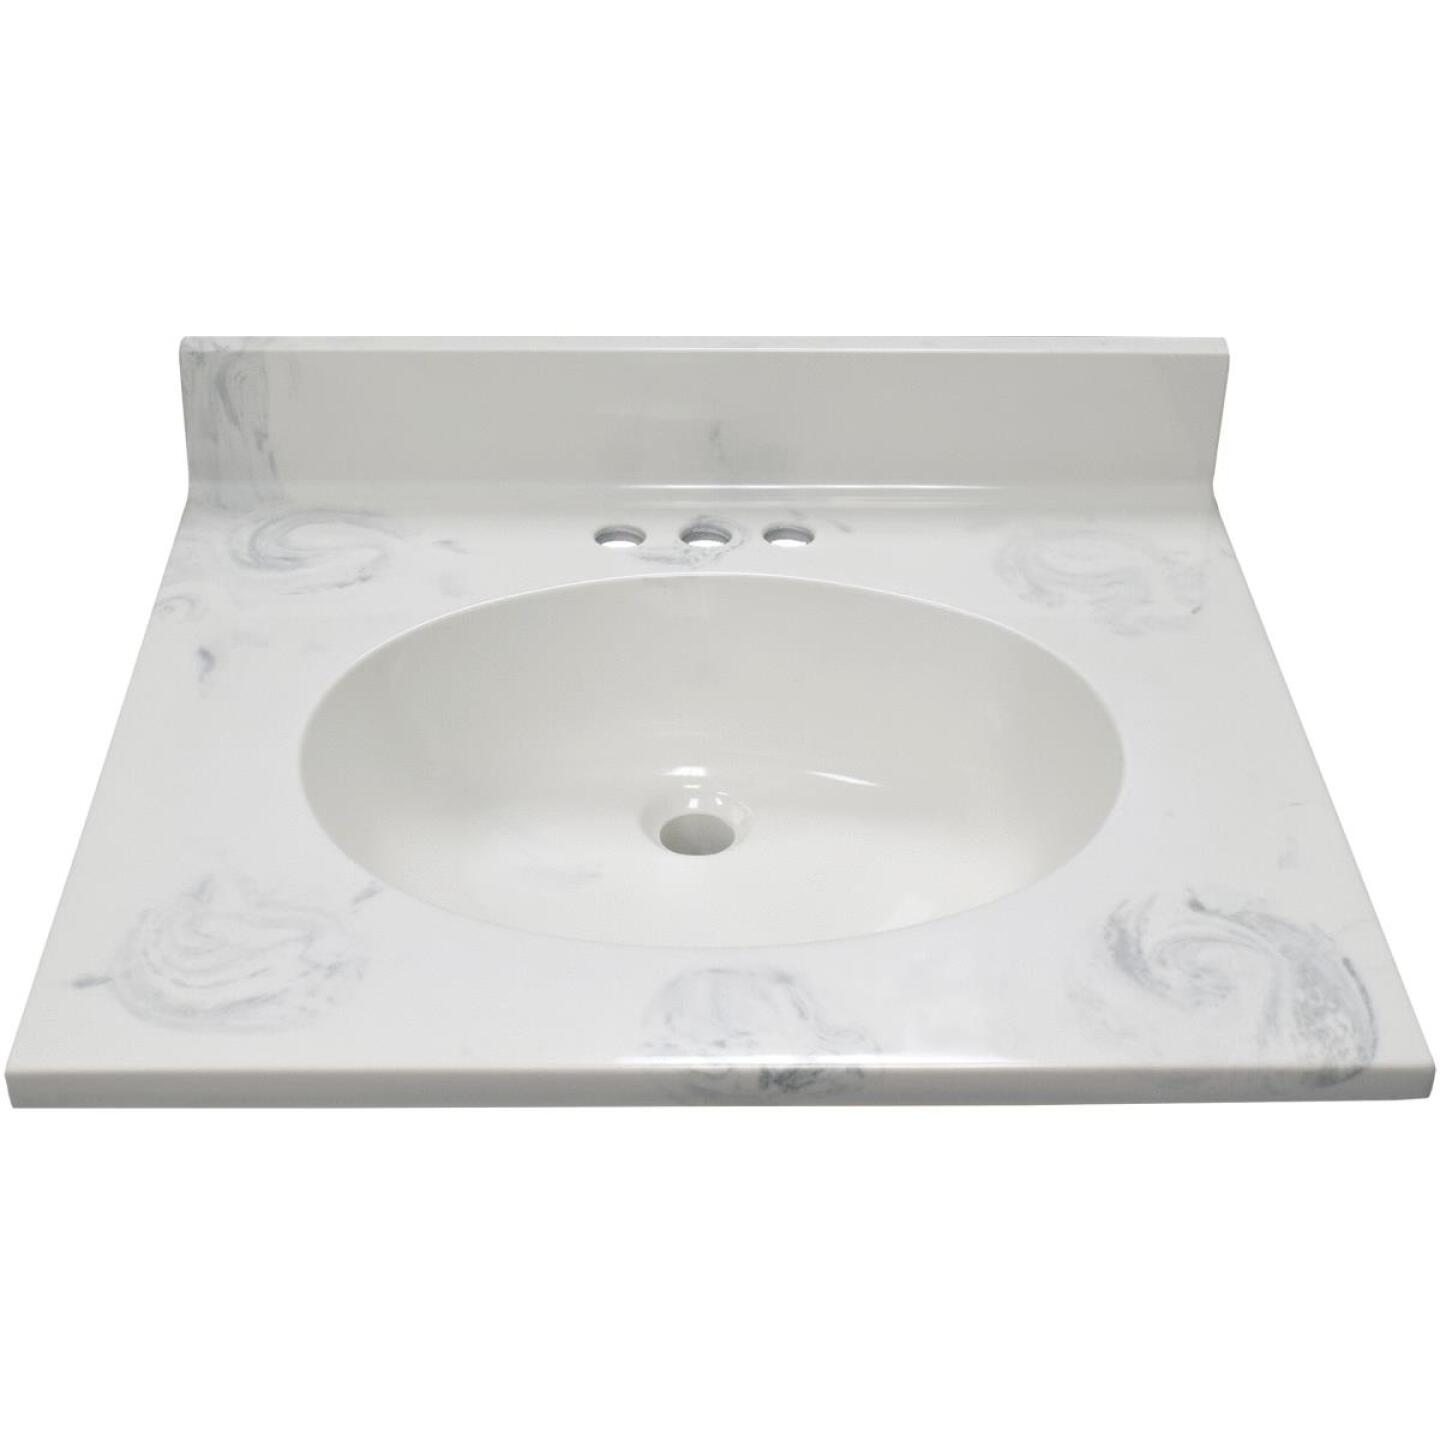 Modular Vanity Tops 25 In. W x 22 In. D Marbled Dove Gray Cultured Marble Vanity Top with Oval Bowl Image 2